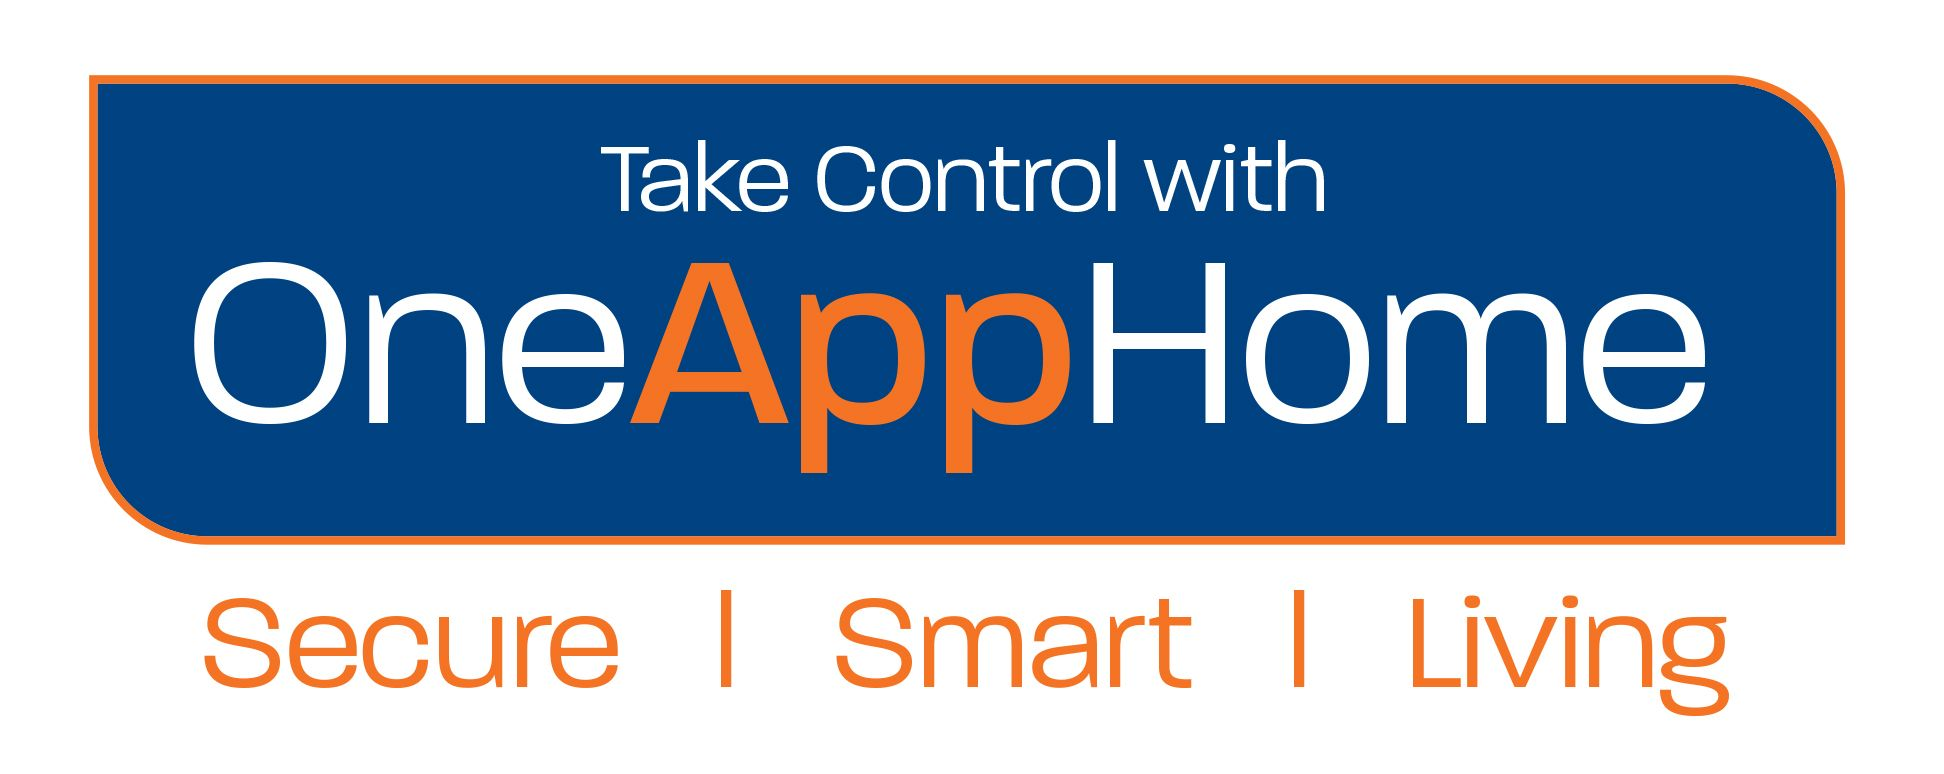 OneAppHome